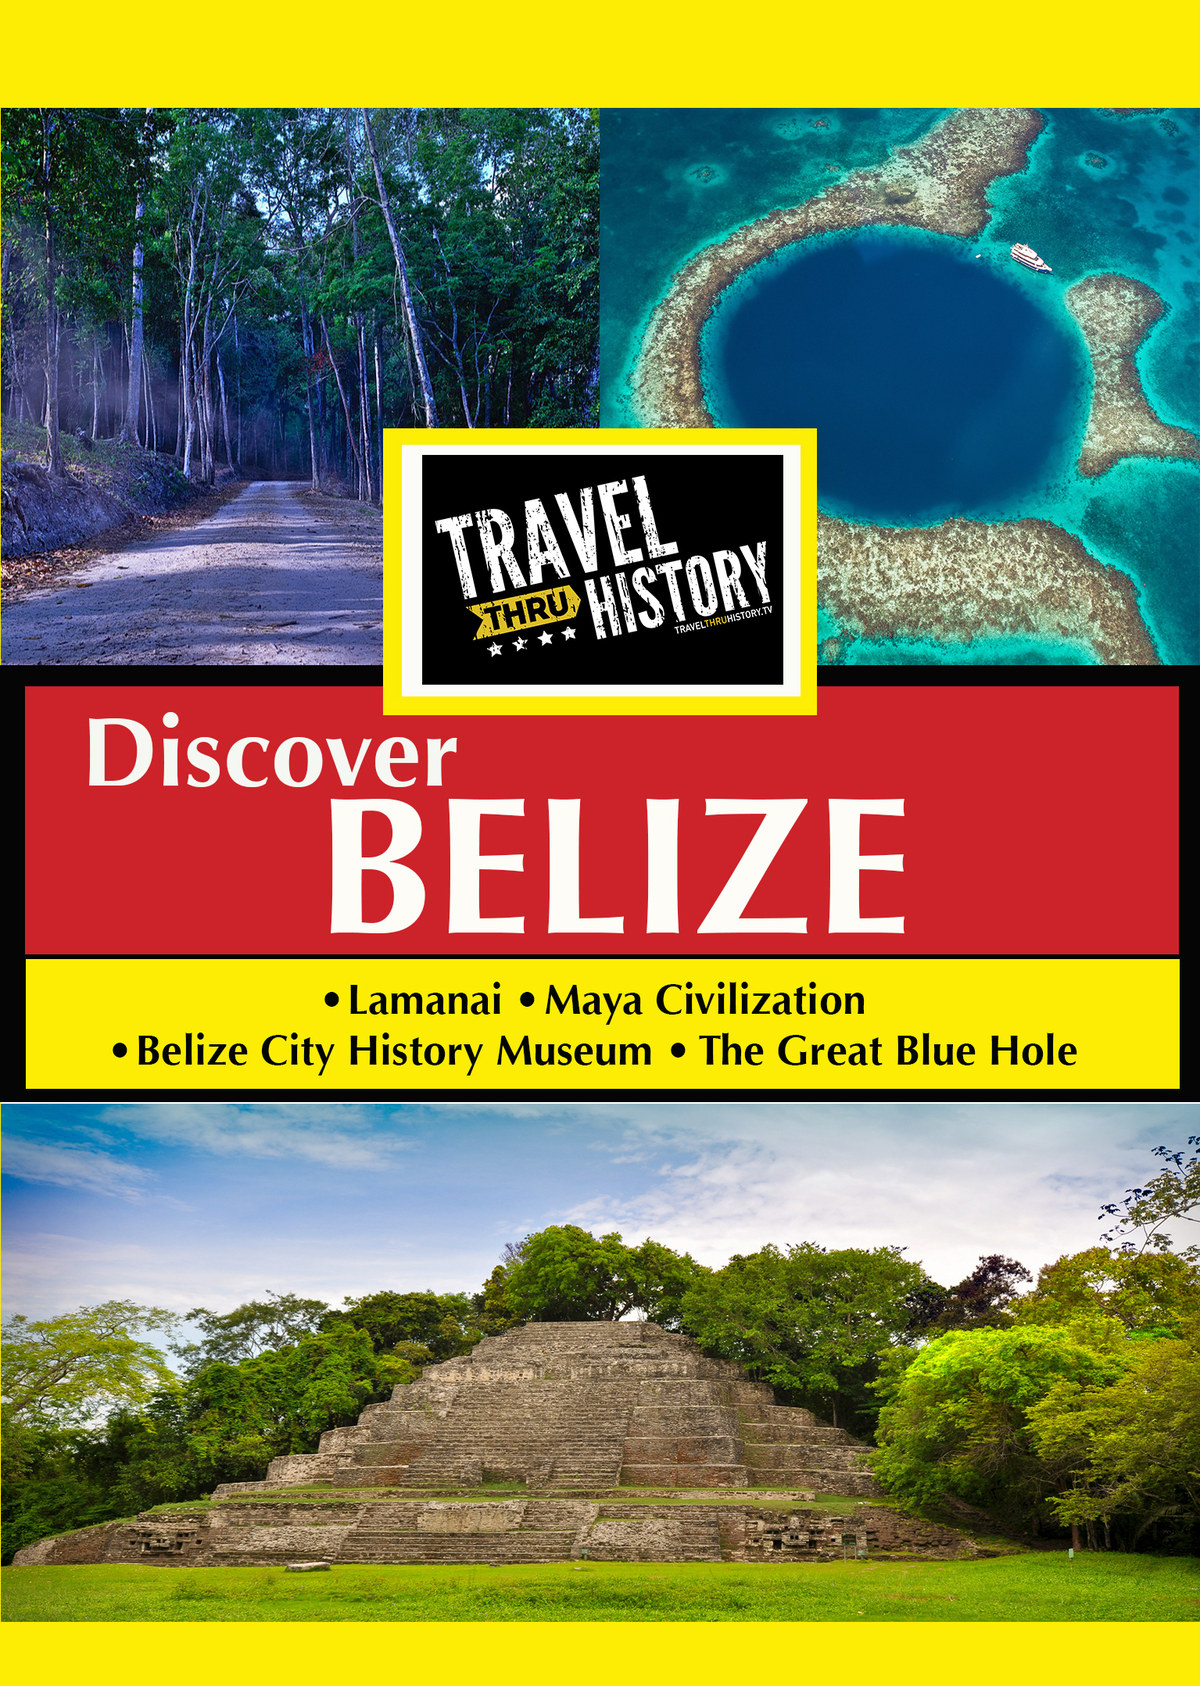 T8964 - Discover Belize